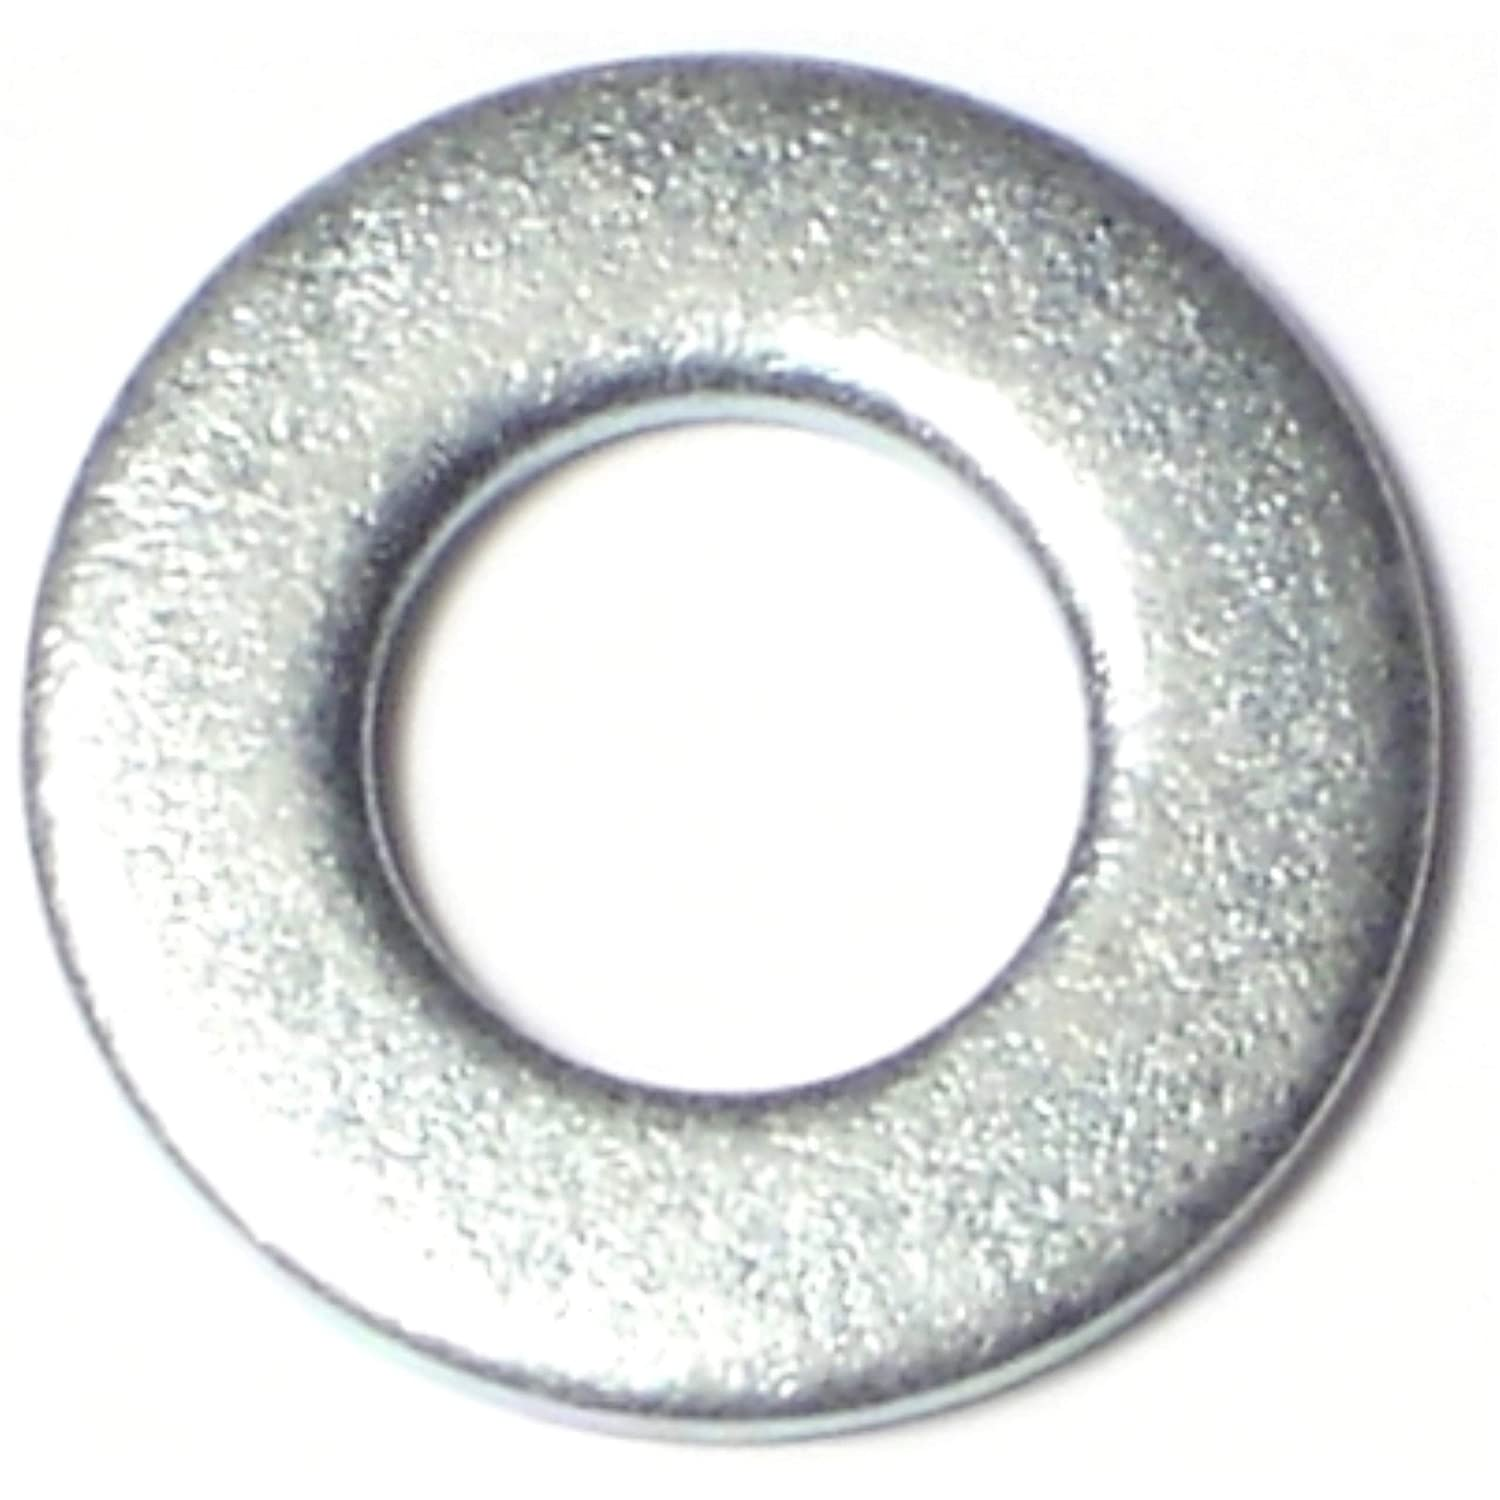 3//8-Inch Hard-to-Find Fastener 014973324971 USS Flat Washers